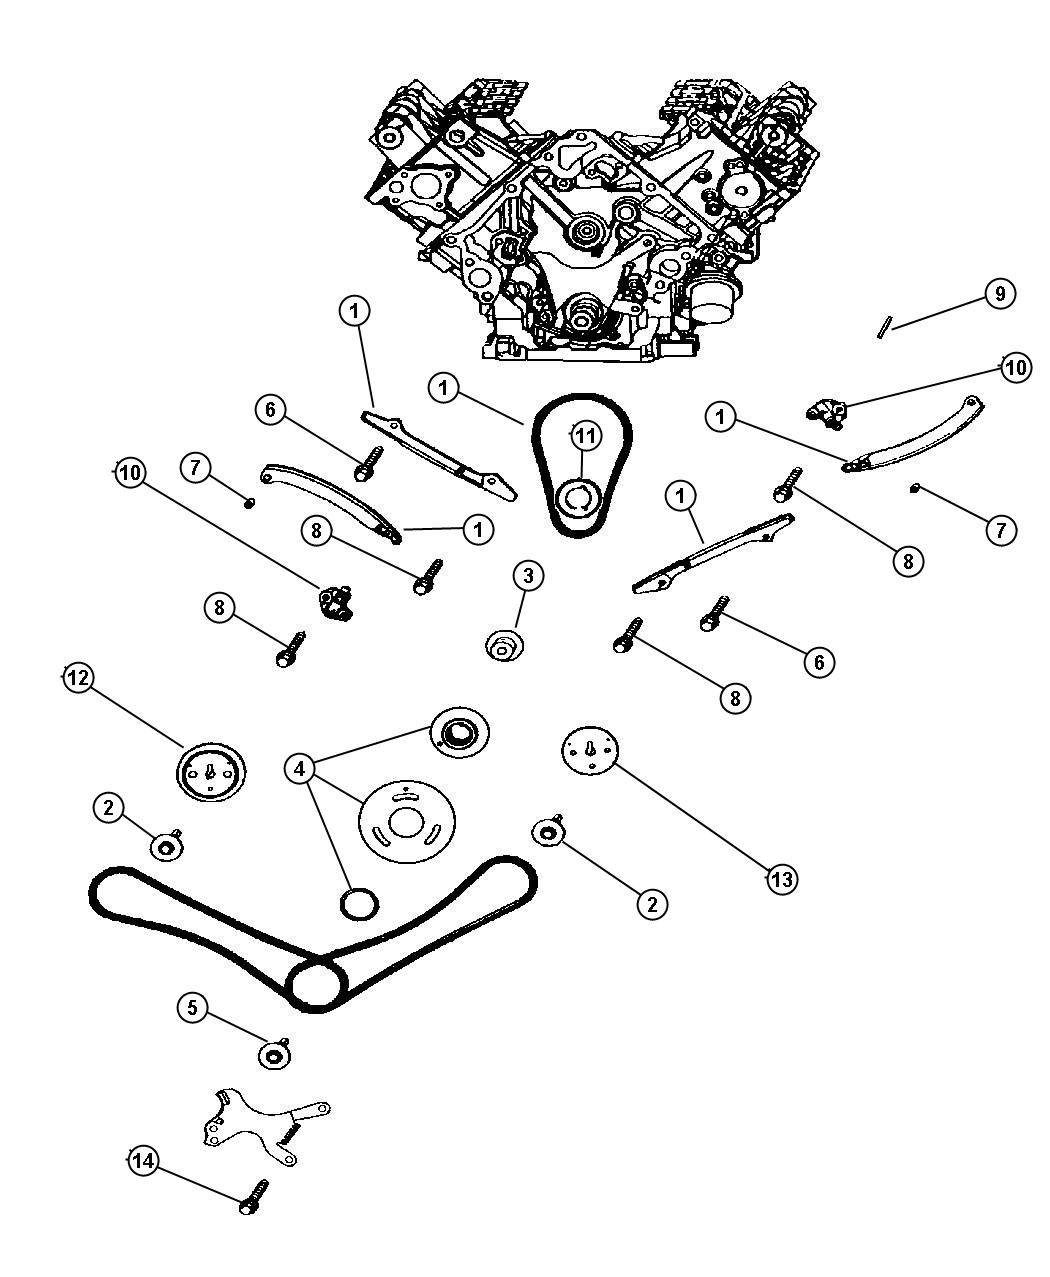 Timing Chain and Guides, 4.7 (EVA)